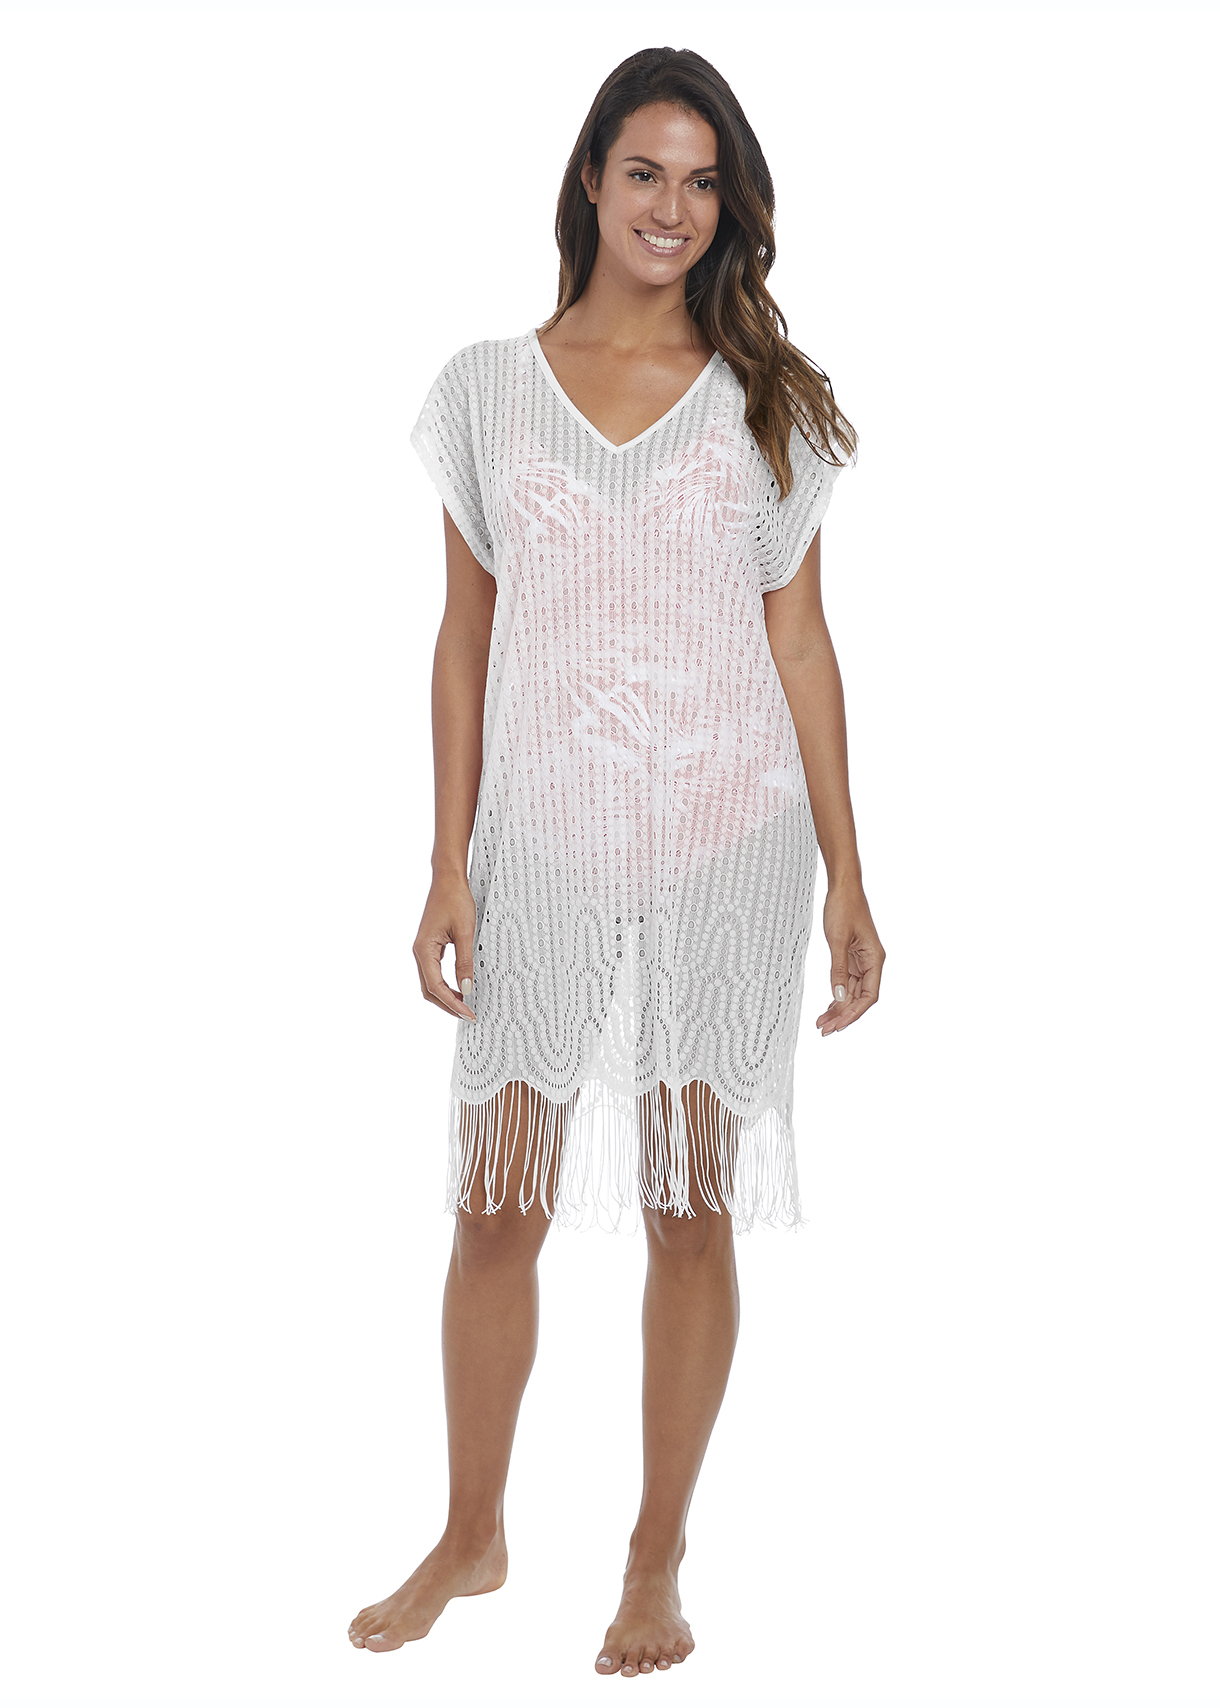 Fantasie Antheia White tunic dress